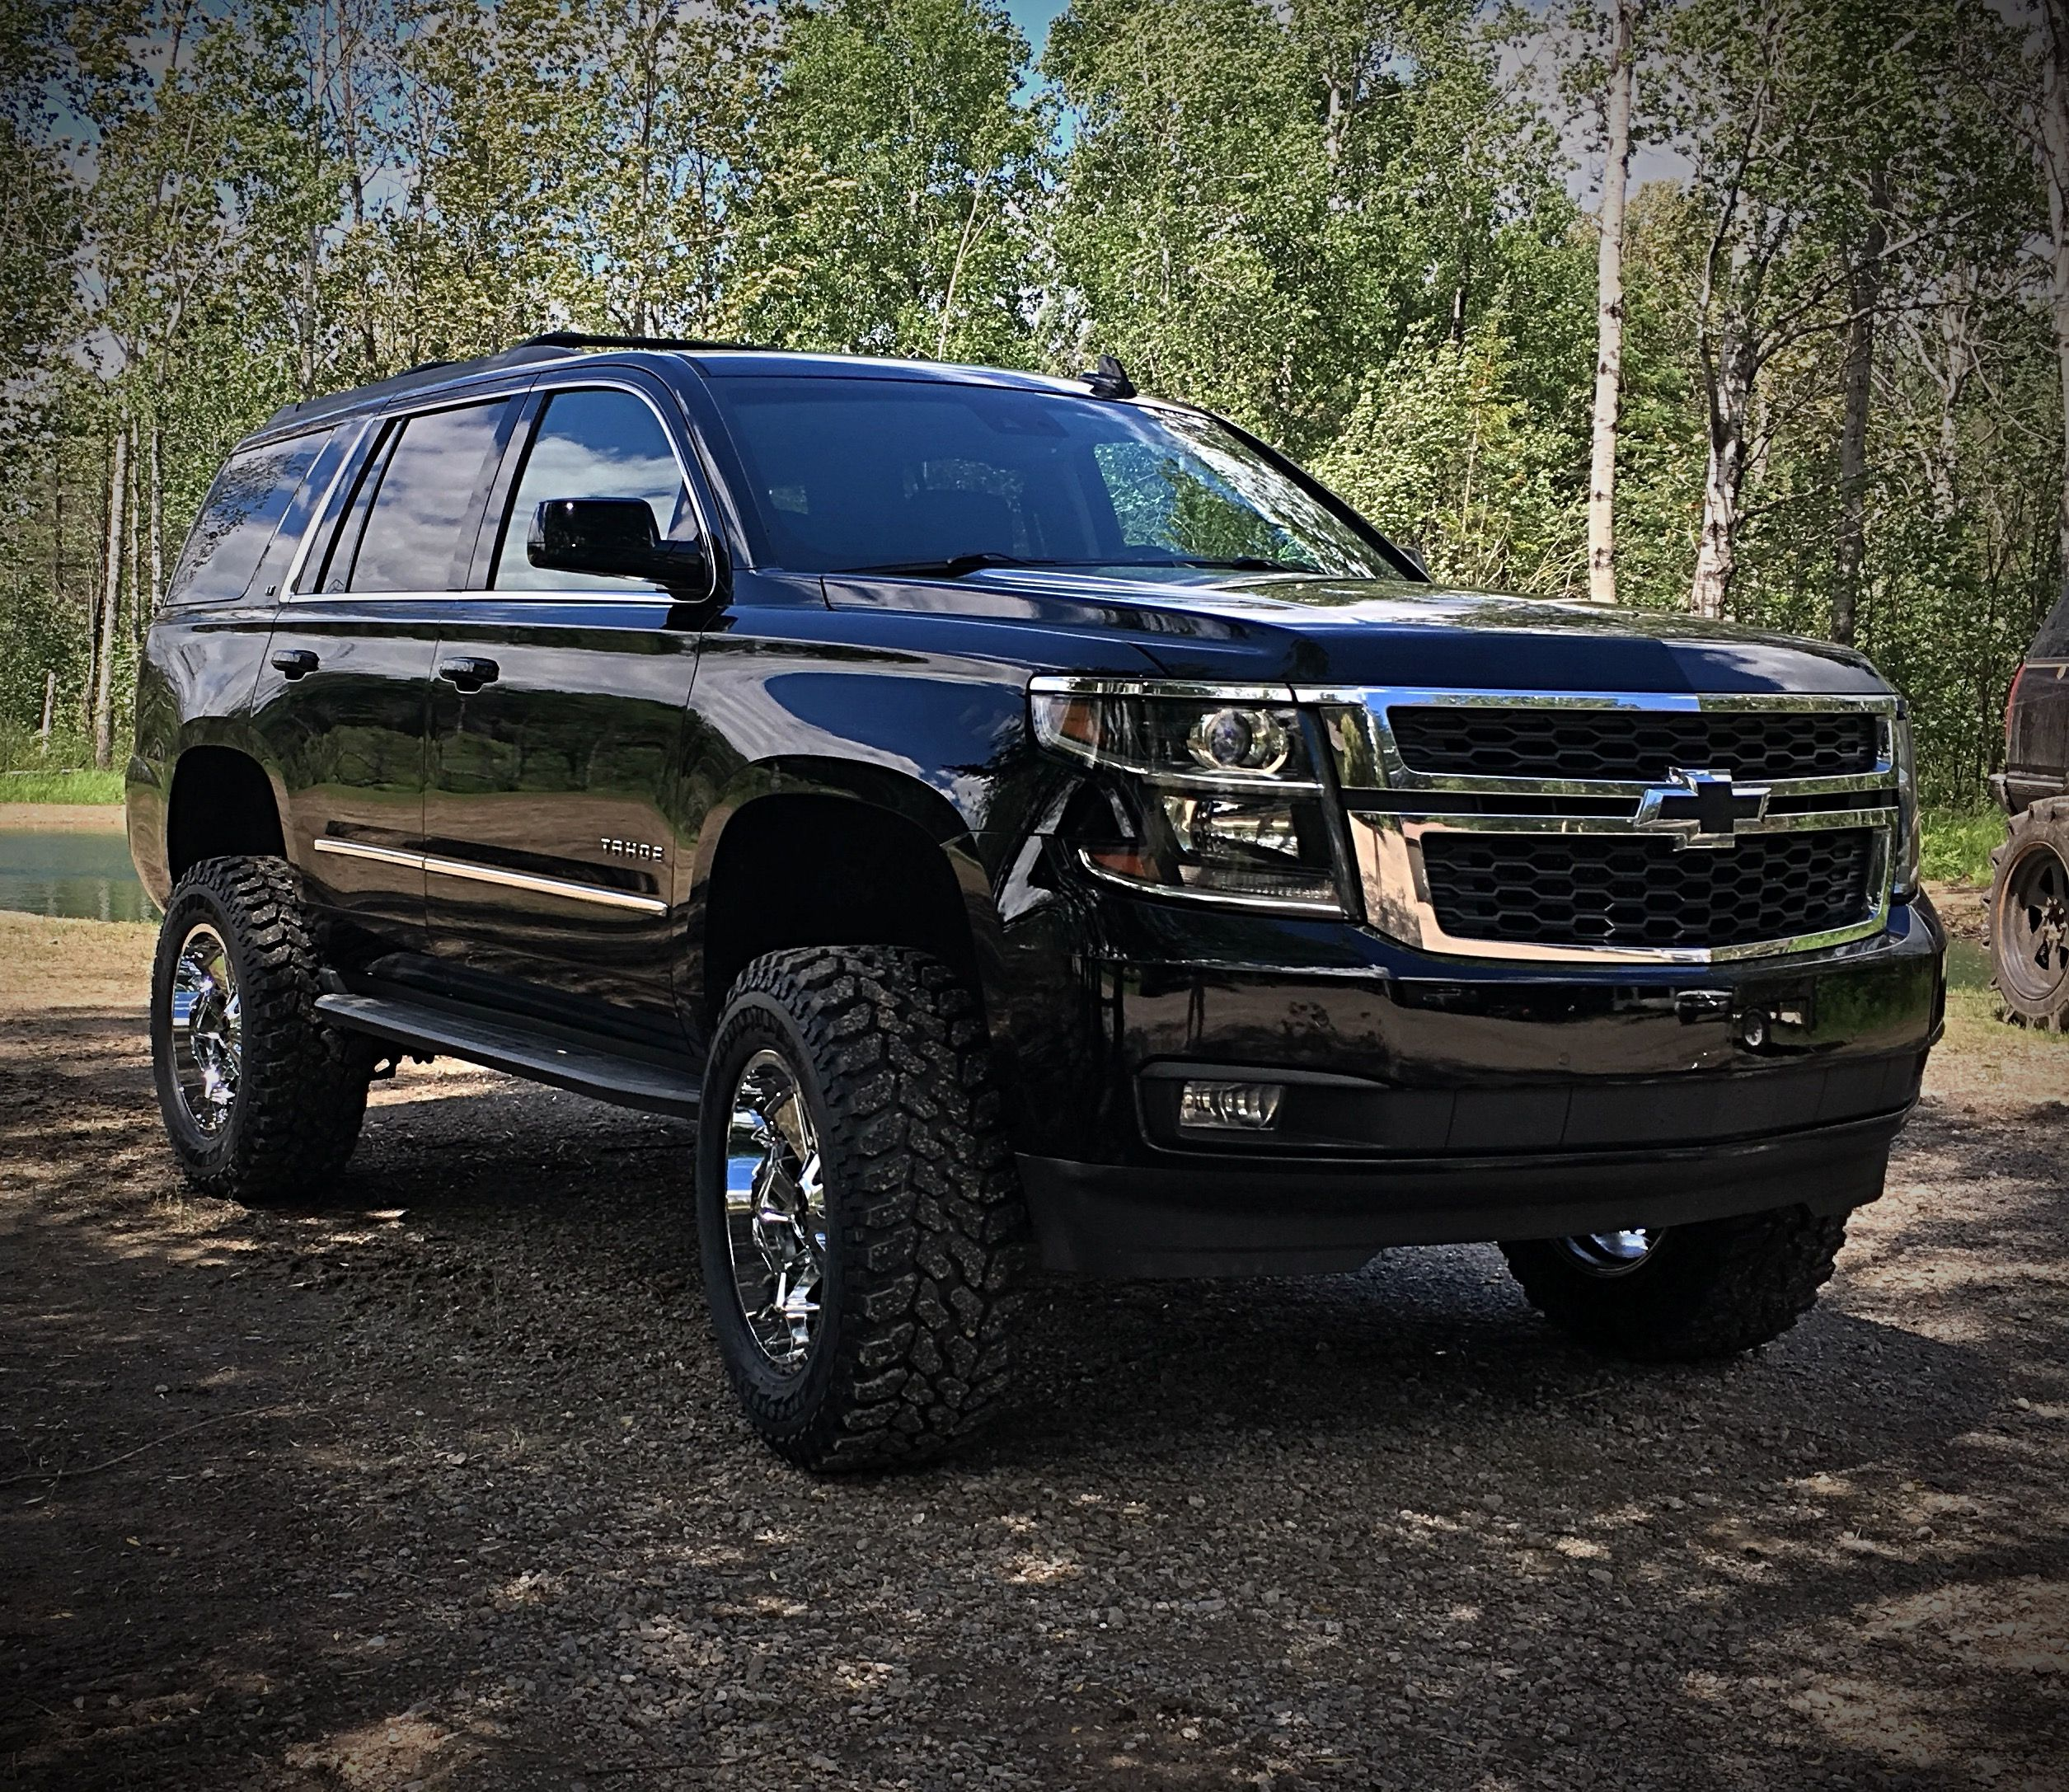 2013 Chevrolet Tahoe Ltz For Sale: Lifted Chevy Tahoe